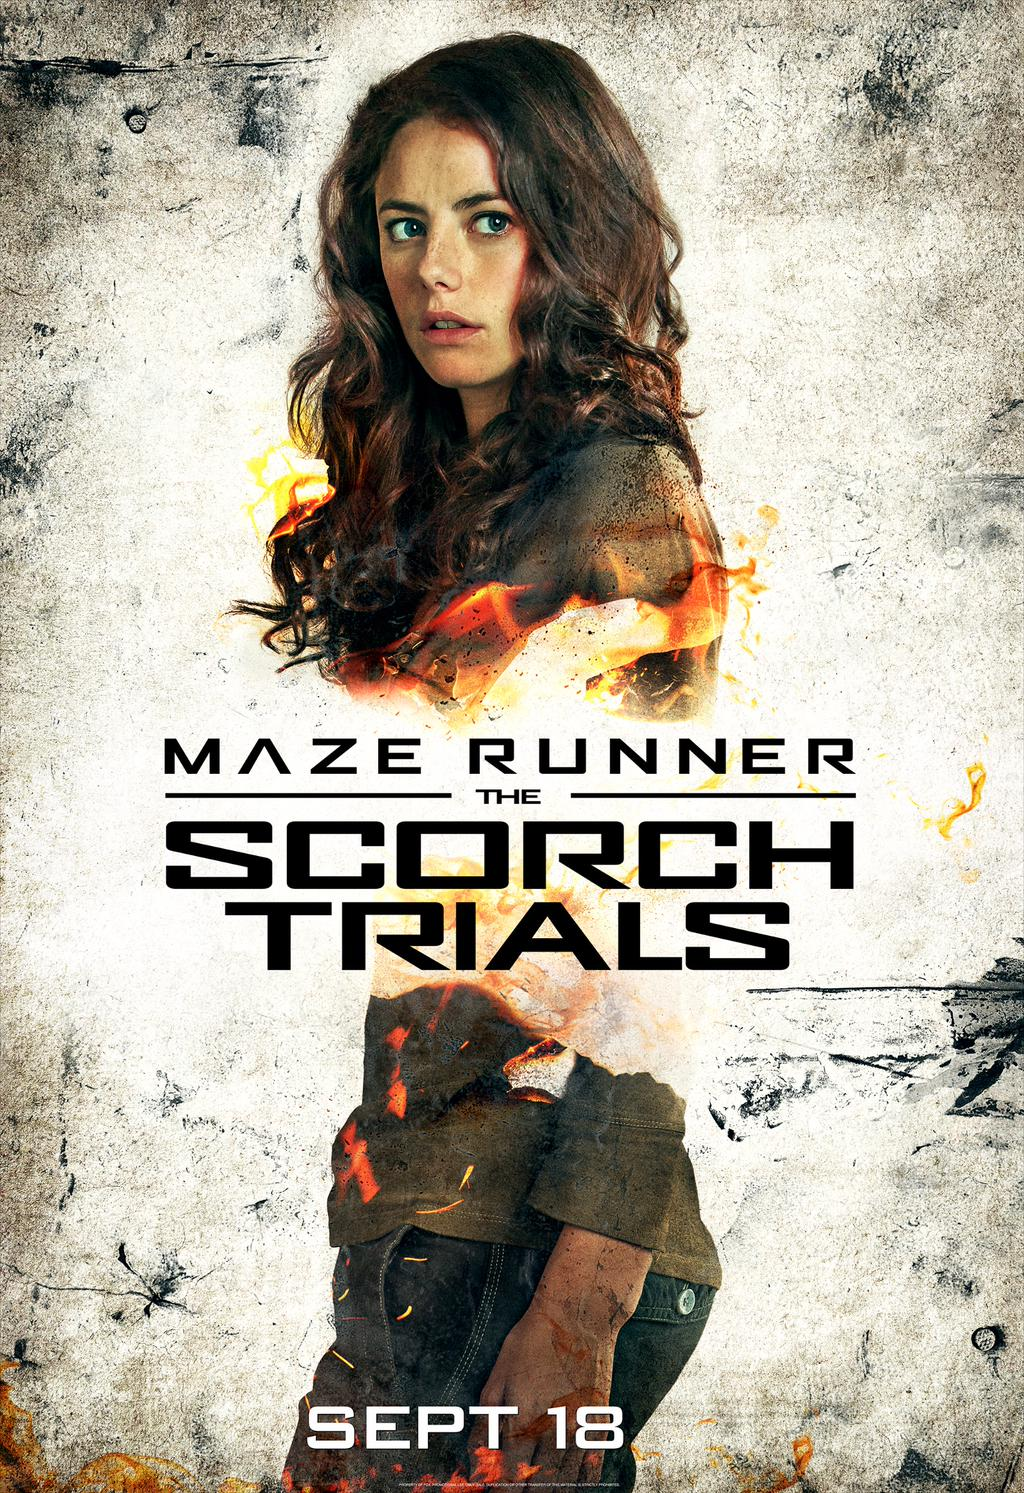 Maze Runner: The Scorch Trials (Teresa)